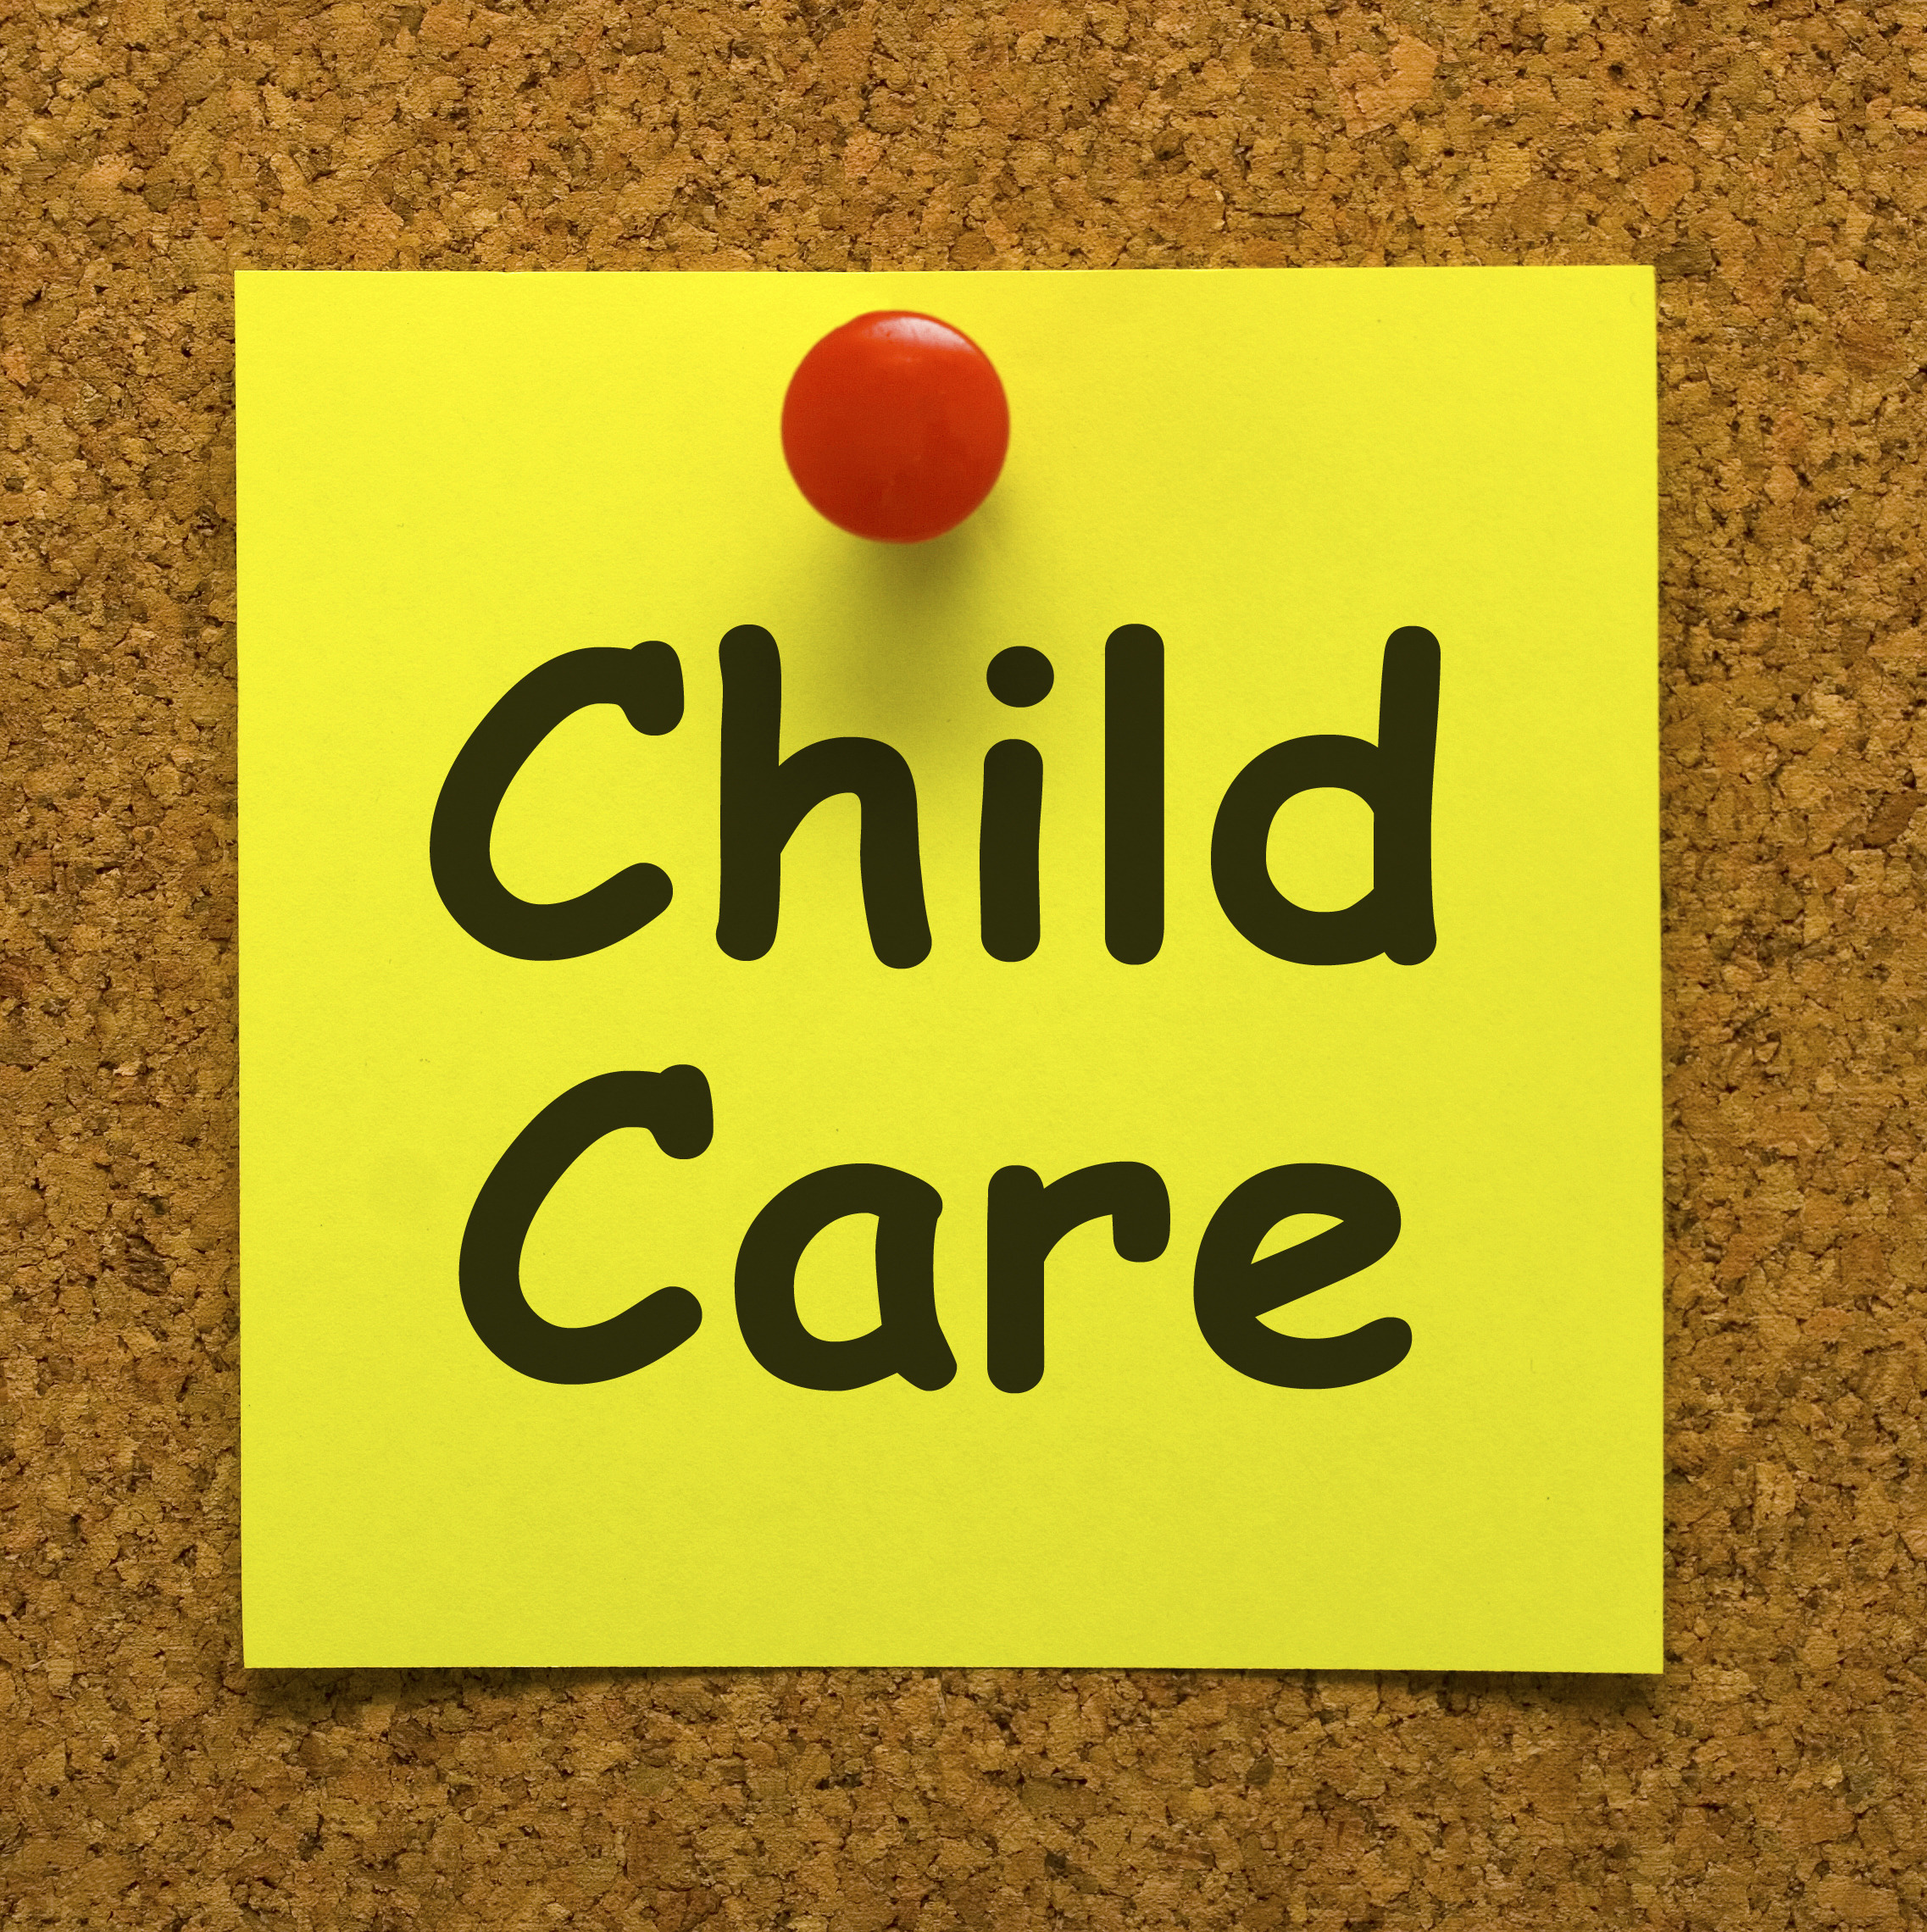 Babysitting Day Care Child Care: What Are The Duties And Responsibilities Of Day Care